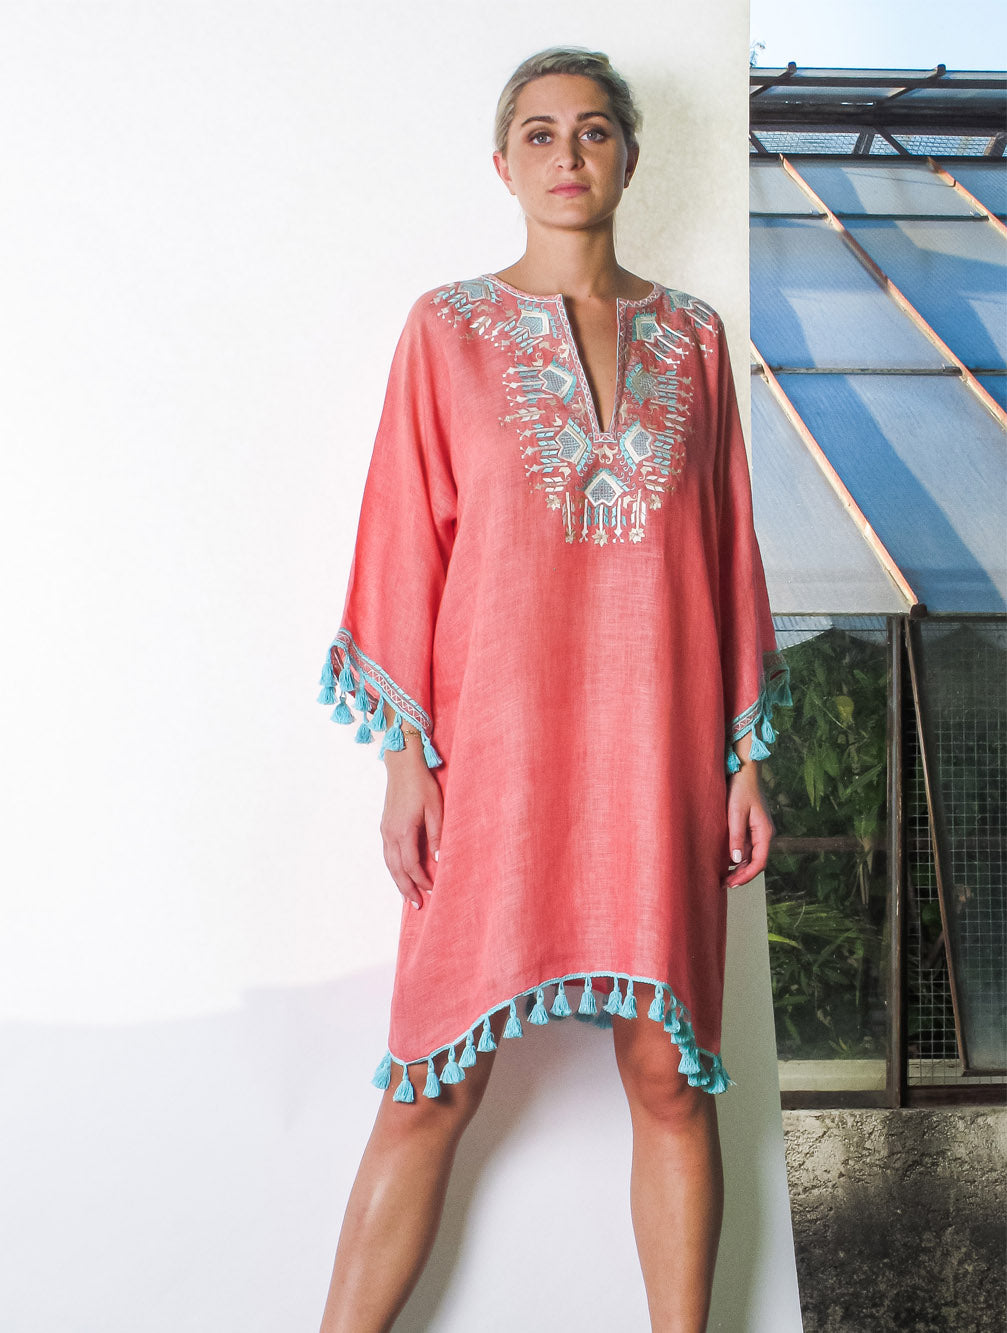 BIANCA IKAT KAFTAN DRESS - Kaia London